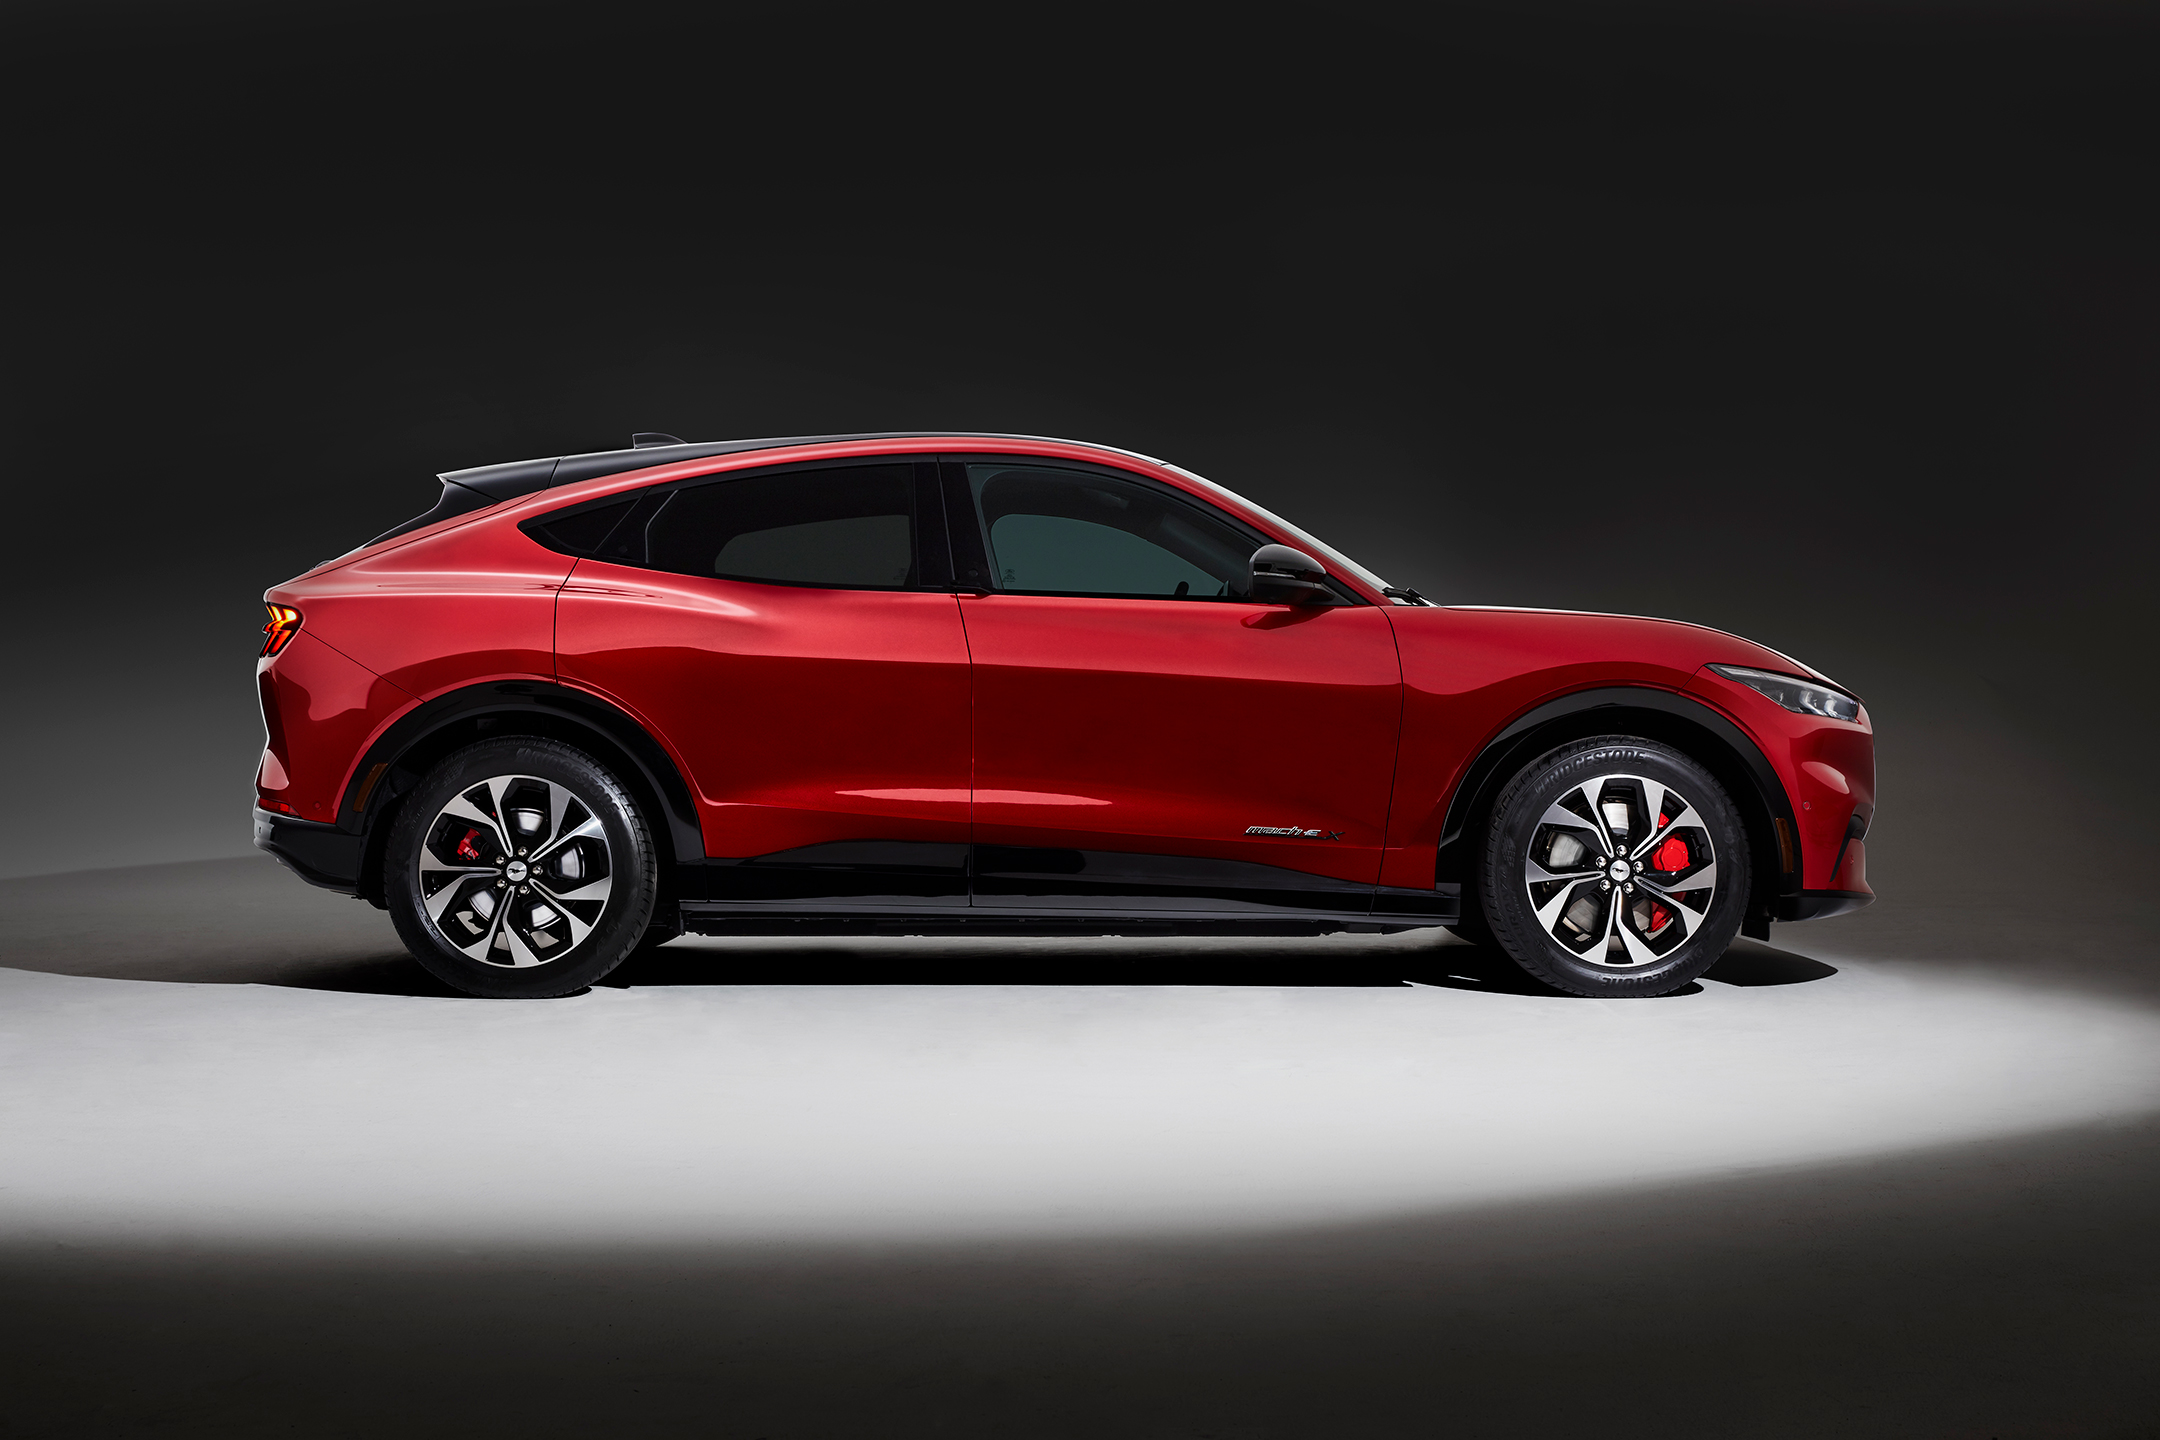 Ford Mustang Mach-E - 2019 - side-face / profil